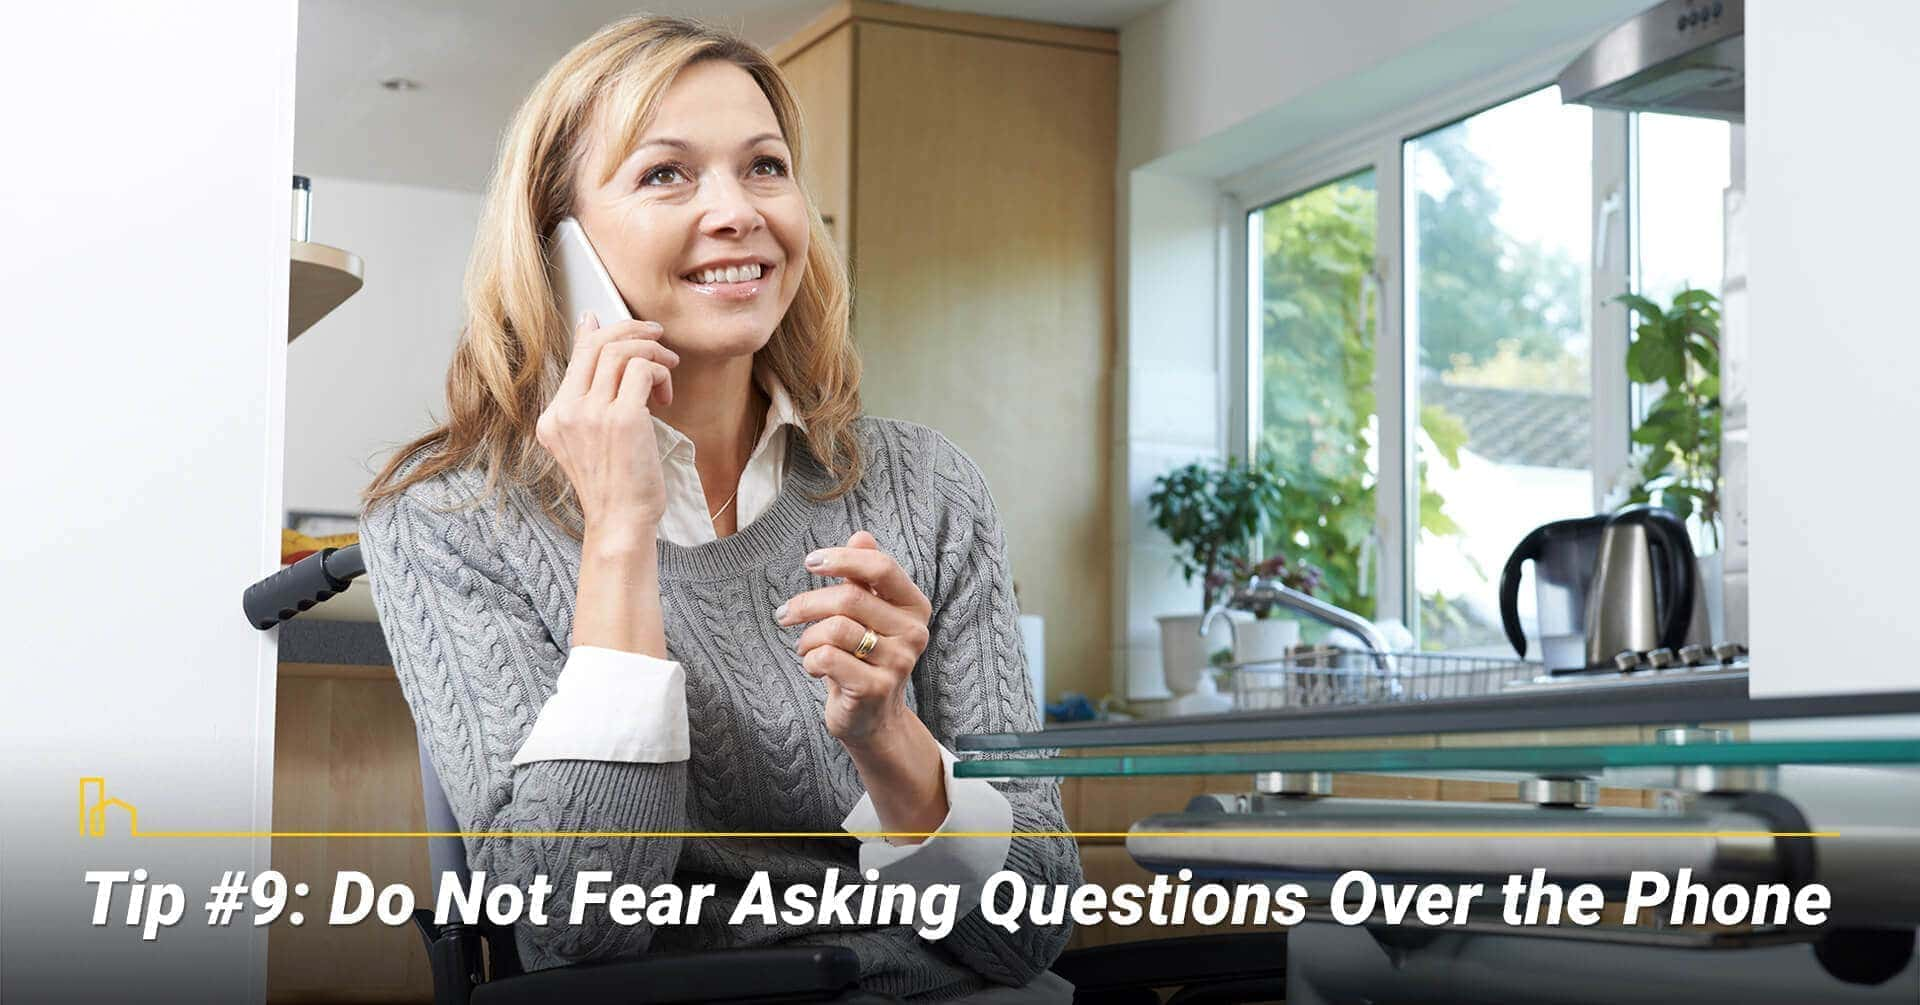 Tip #9: Do Not Fear Asking Questions Over the Phone, get your questions answered over the phone